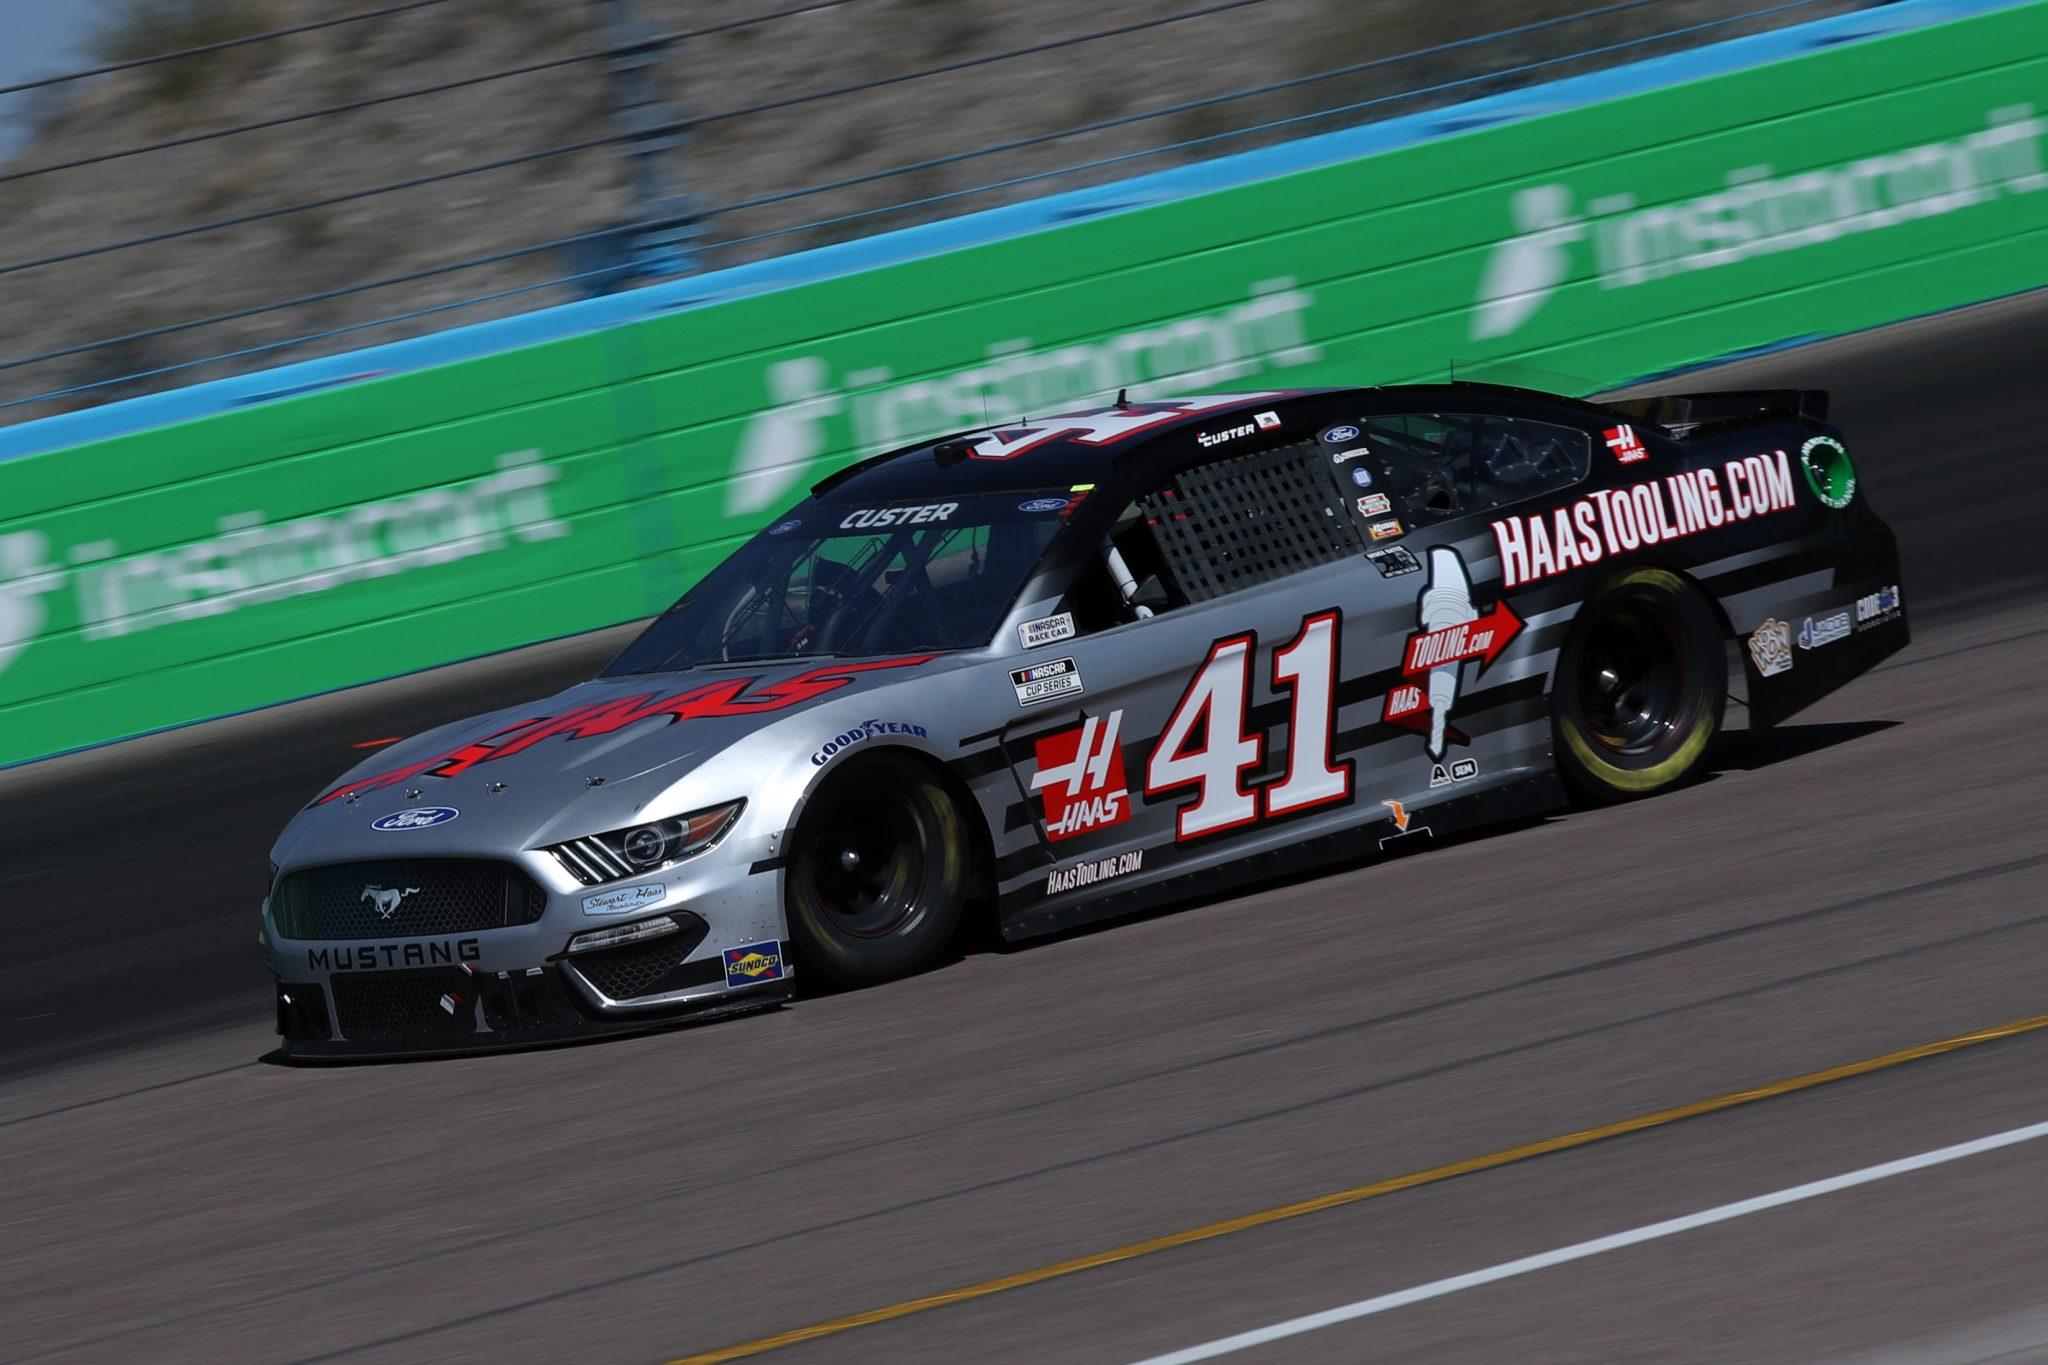 AVONDALE, ARIZONA - MARCH 14: Cole Custer, driver of the #41 HaasTooling.com Ford, drives during the NASCAR Cup Series Instacart 500 at Phoenix Raceway on March 14, 2021 in Avondale, Arizona. (Photo by Sean Gardner/Getty Images) | Getty Images